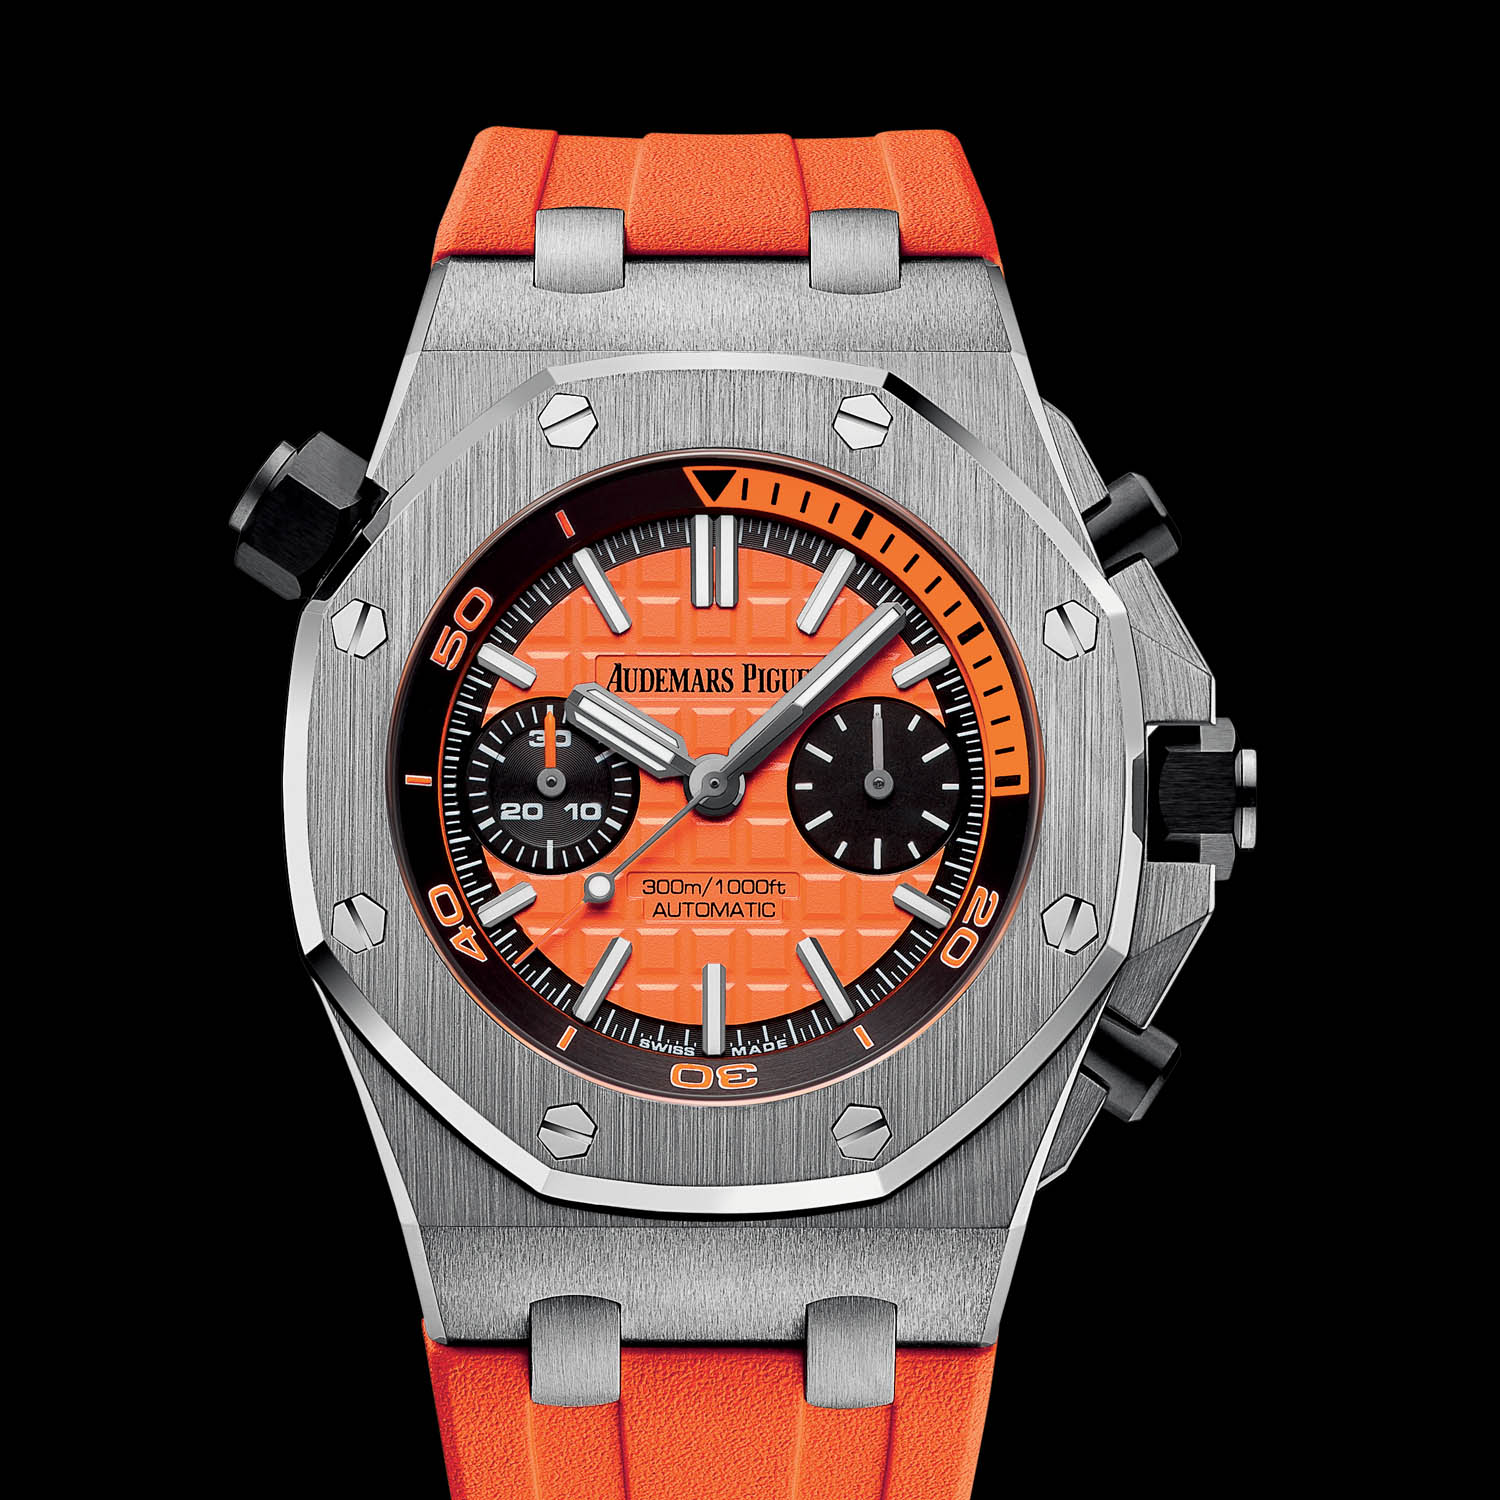 Audemars Piguet Royal Oak Offshore Diver Chronograph 26703ST - SIHH 2016